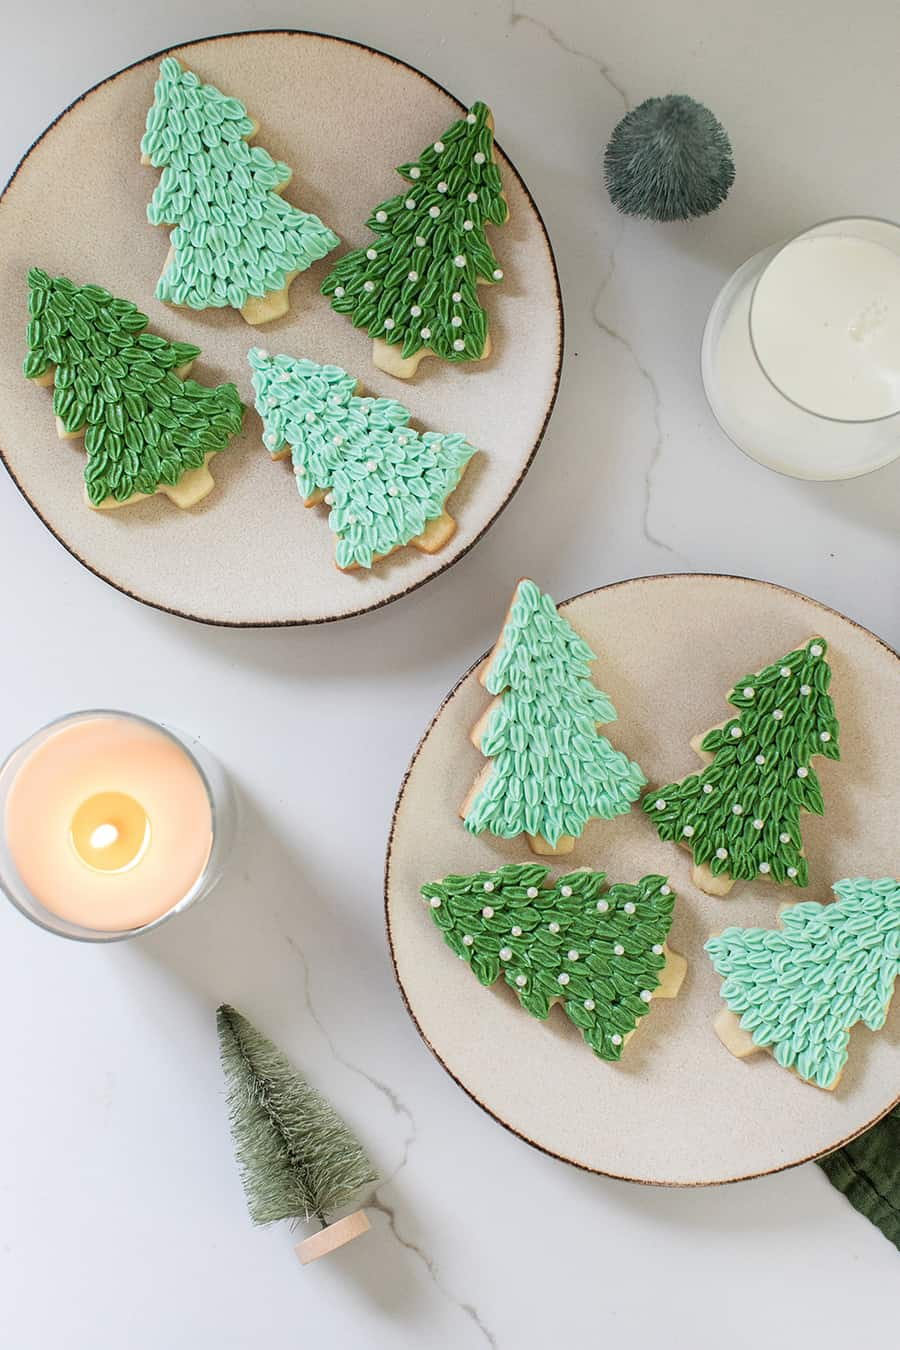 Christmas cookies on plates with a glass of milk.